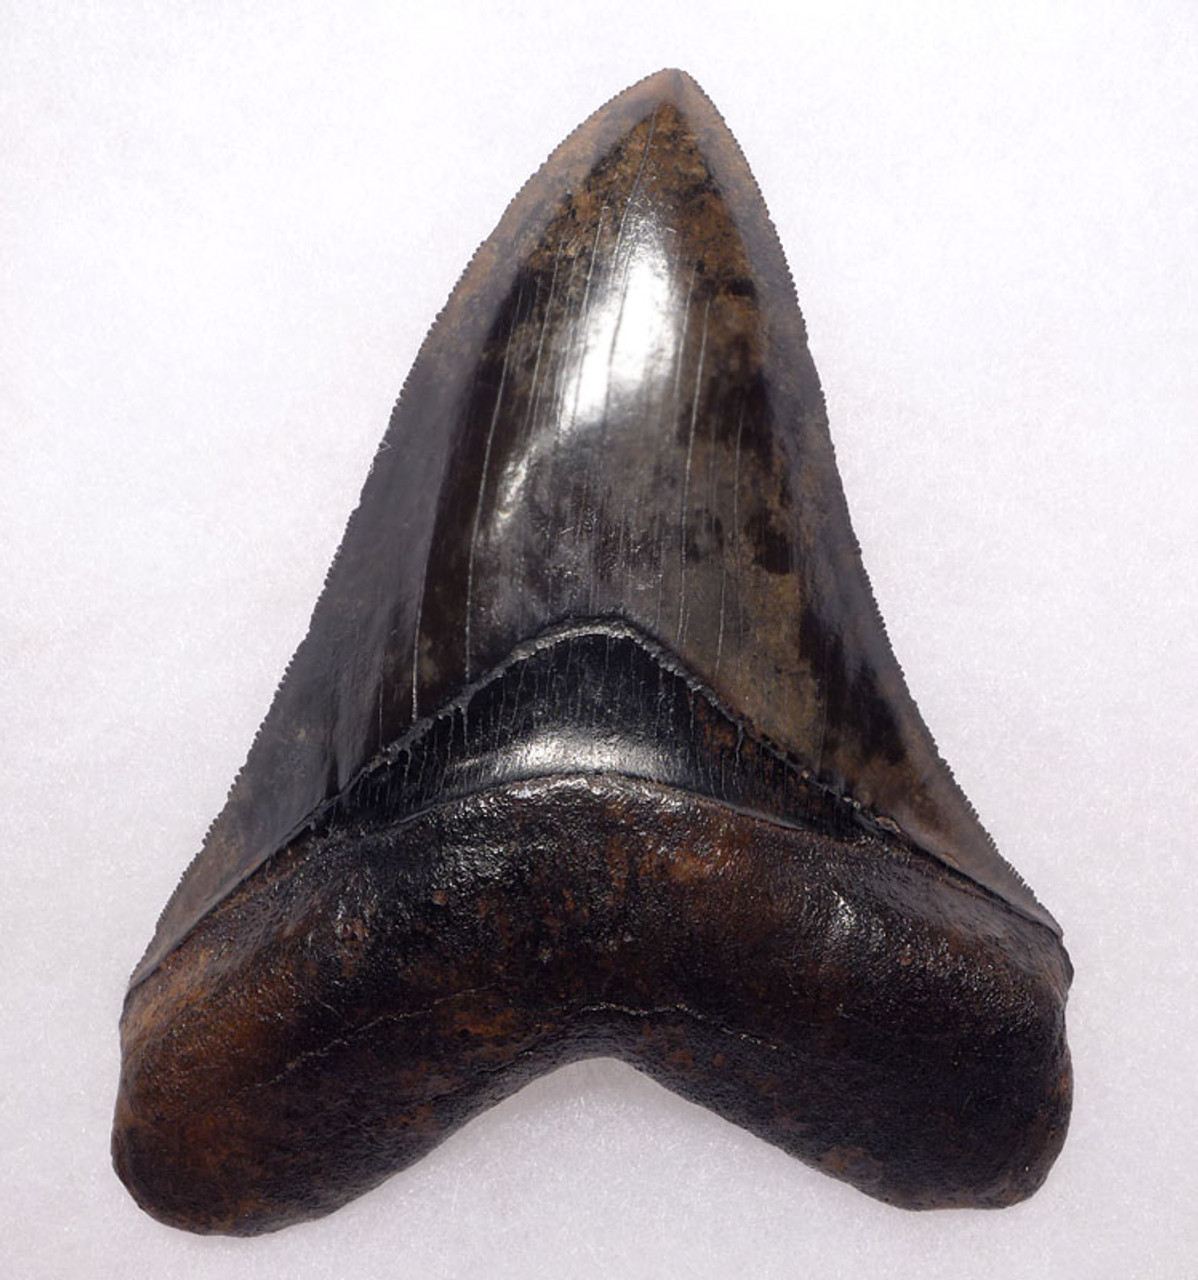 SH6-307 - FINEST COLLECTOR GRADE SUNSET THUNDERSTORM 5 INCH MEGALODON SHARK TOOTH